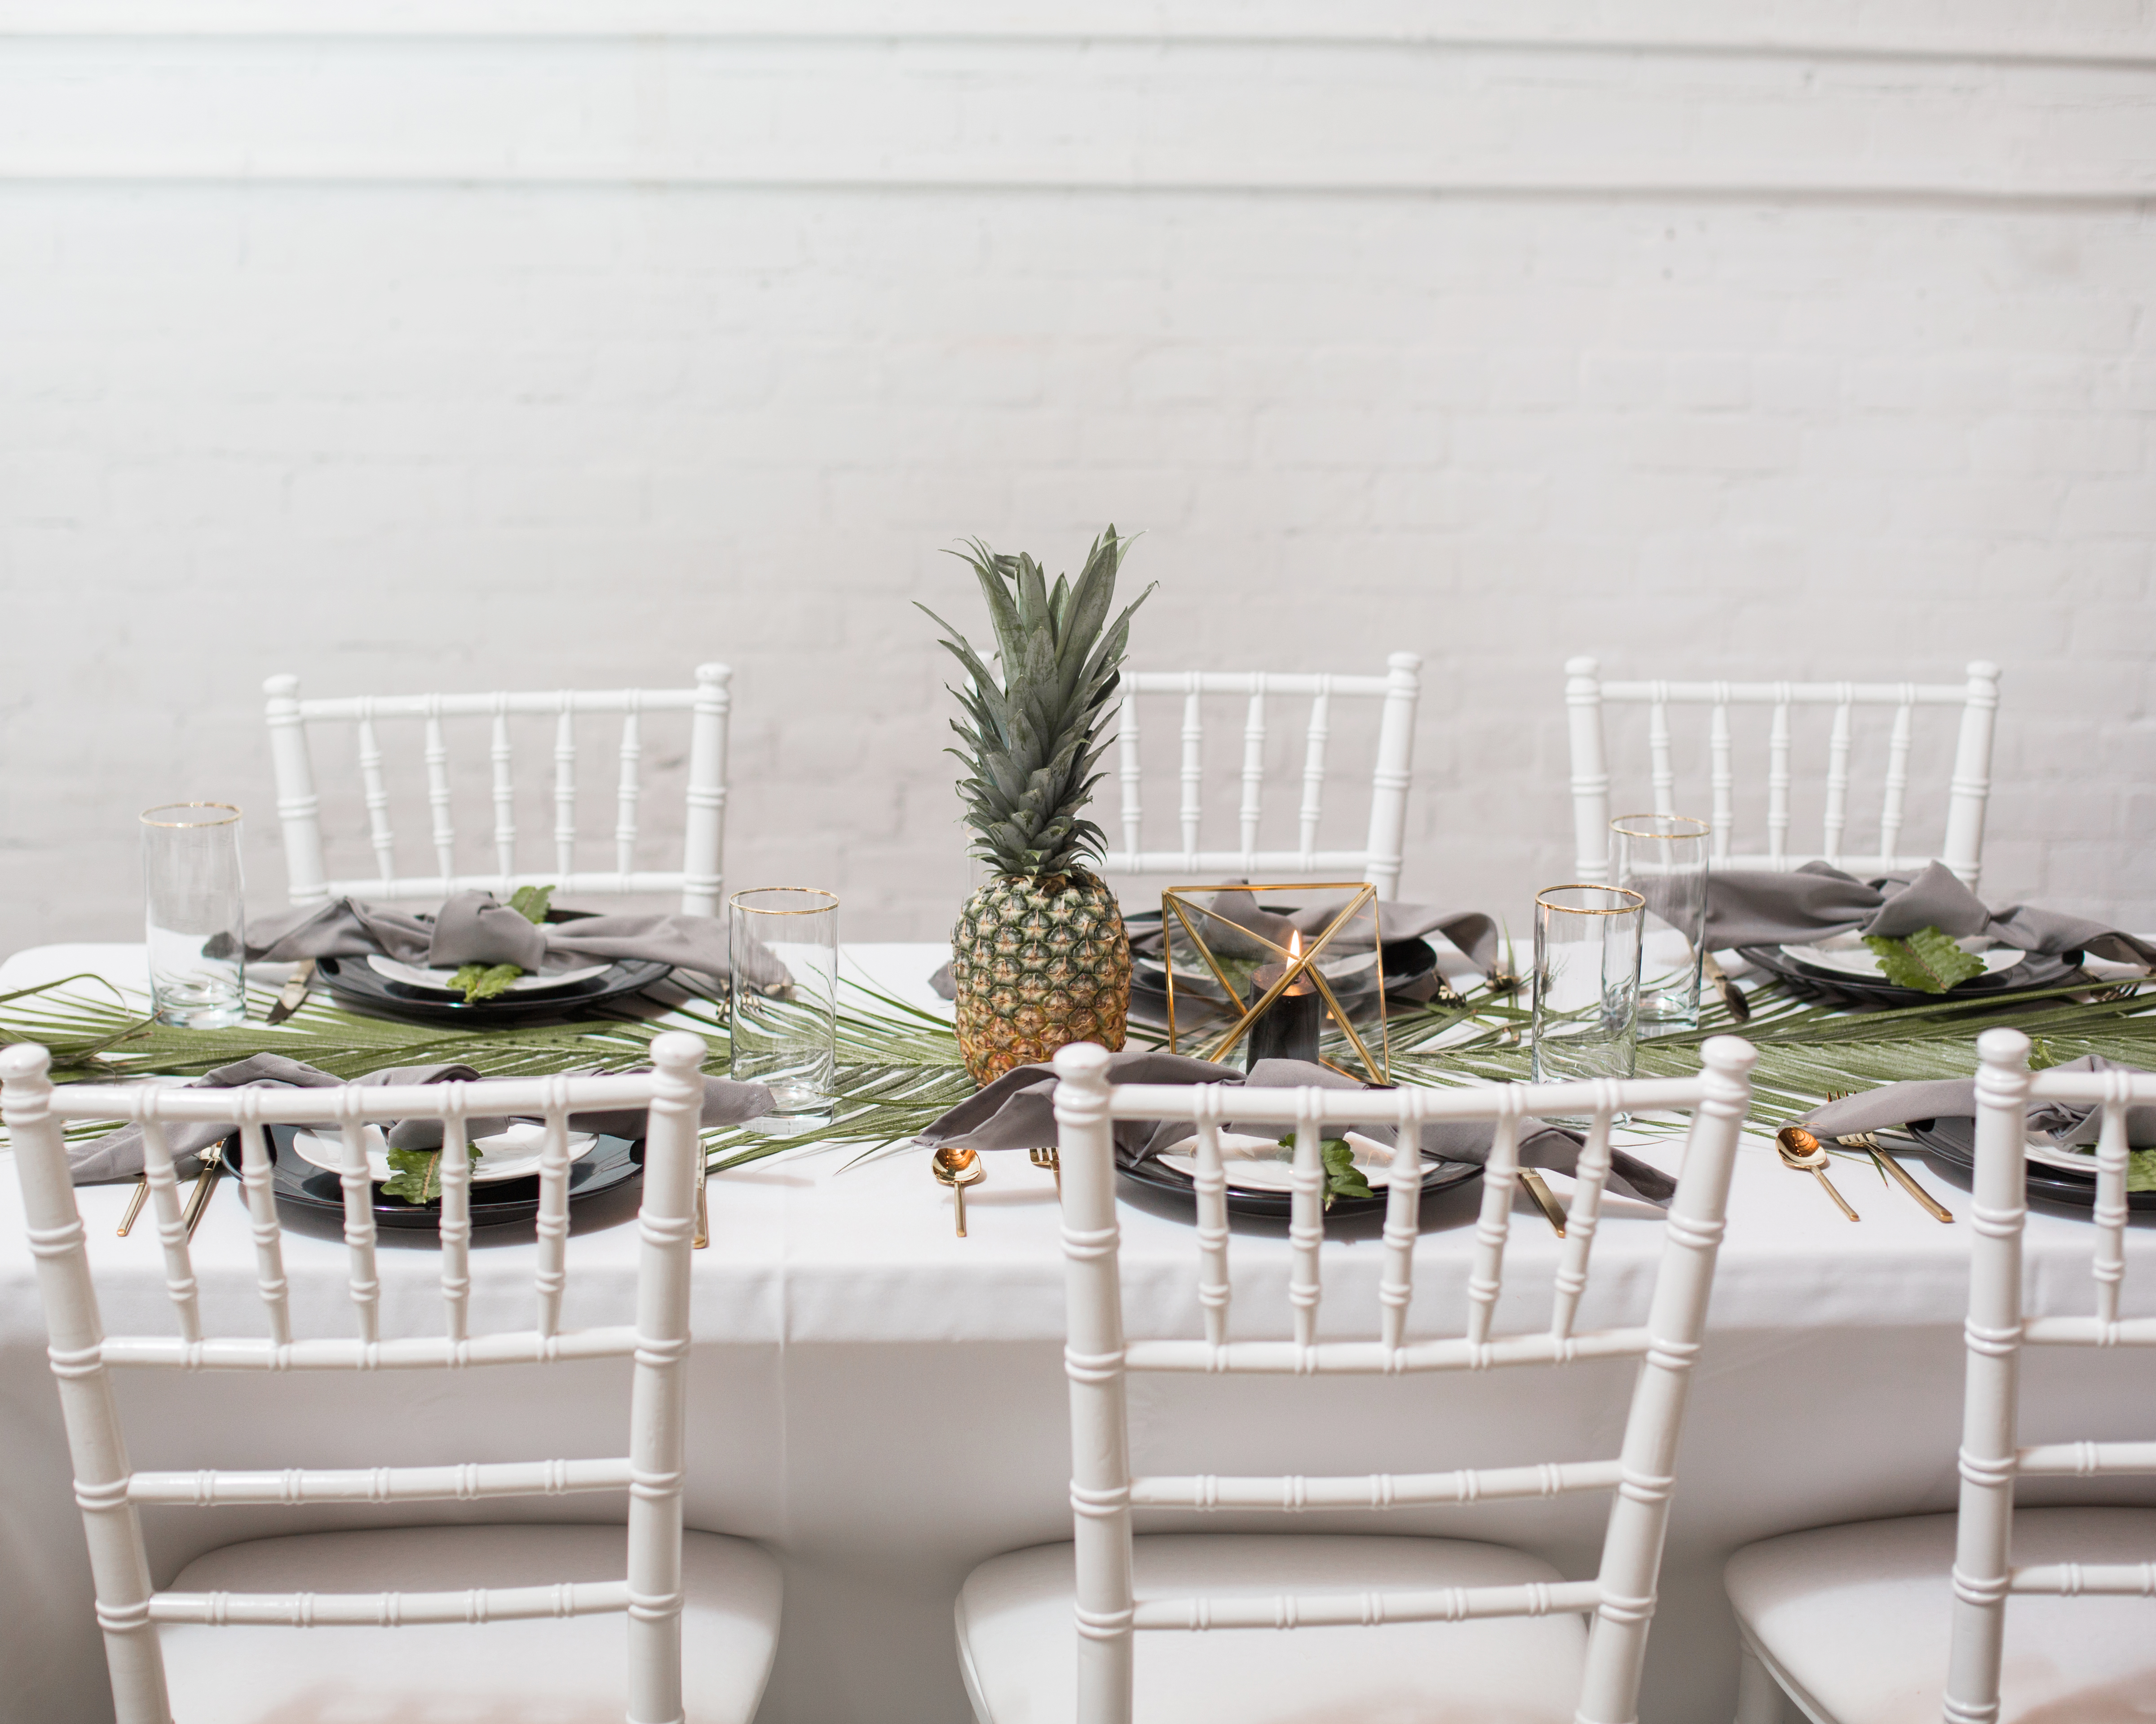 Was A Perfect Fit For Tropical 30th Birthday Party All The Dinnerware And Geometric Lanterns Were Provided By Anya From Stella Rentals Design